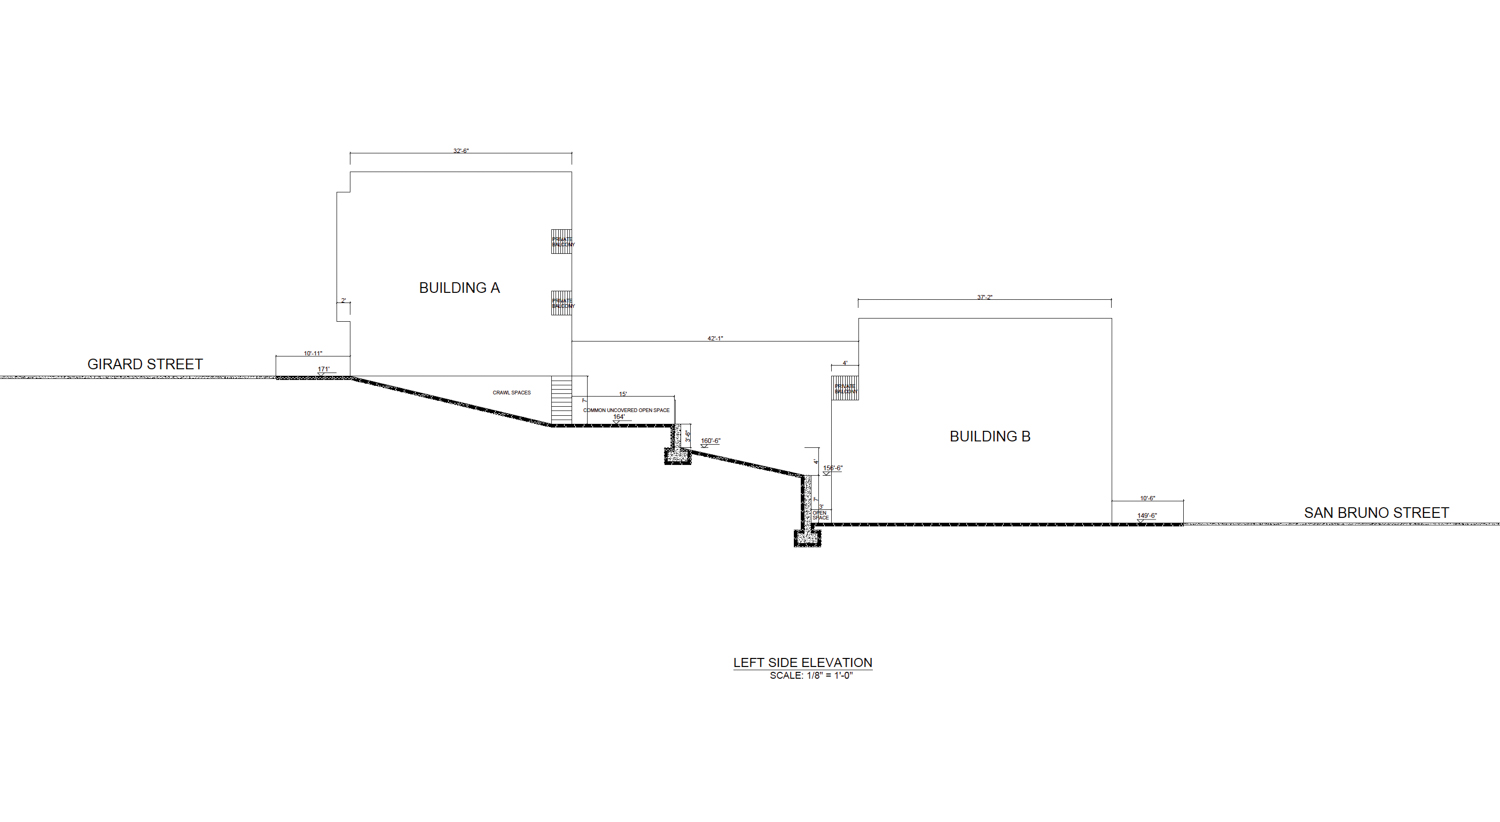 1149 Girard Street side elevation of the two structures, image courtesy Thomas Lei